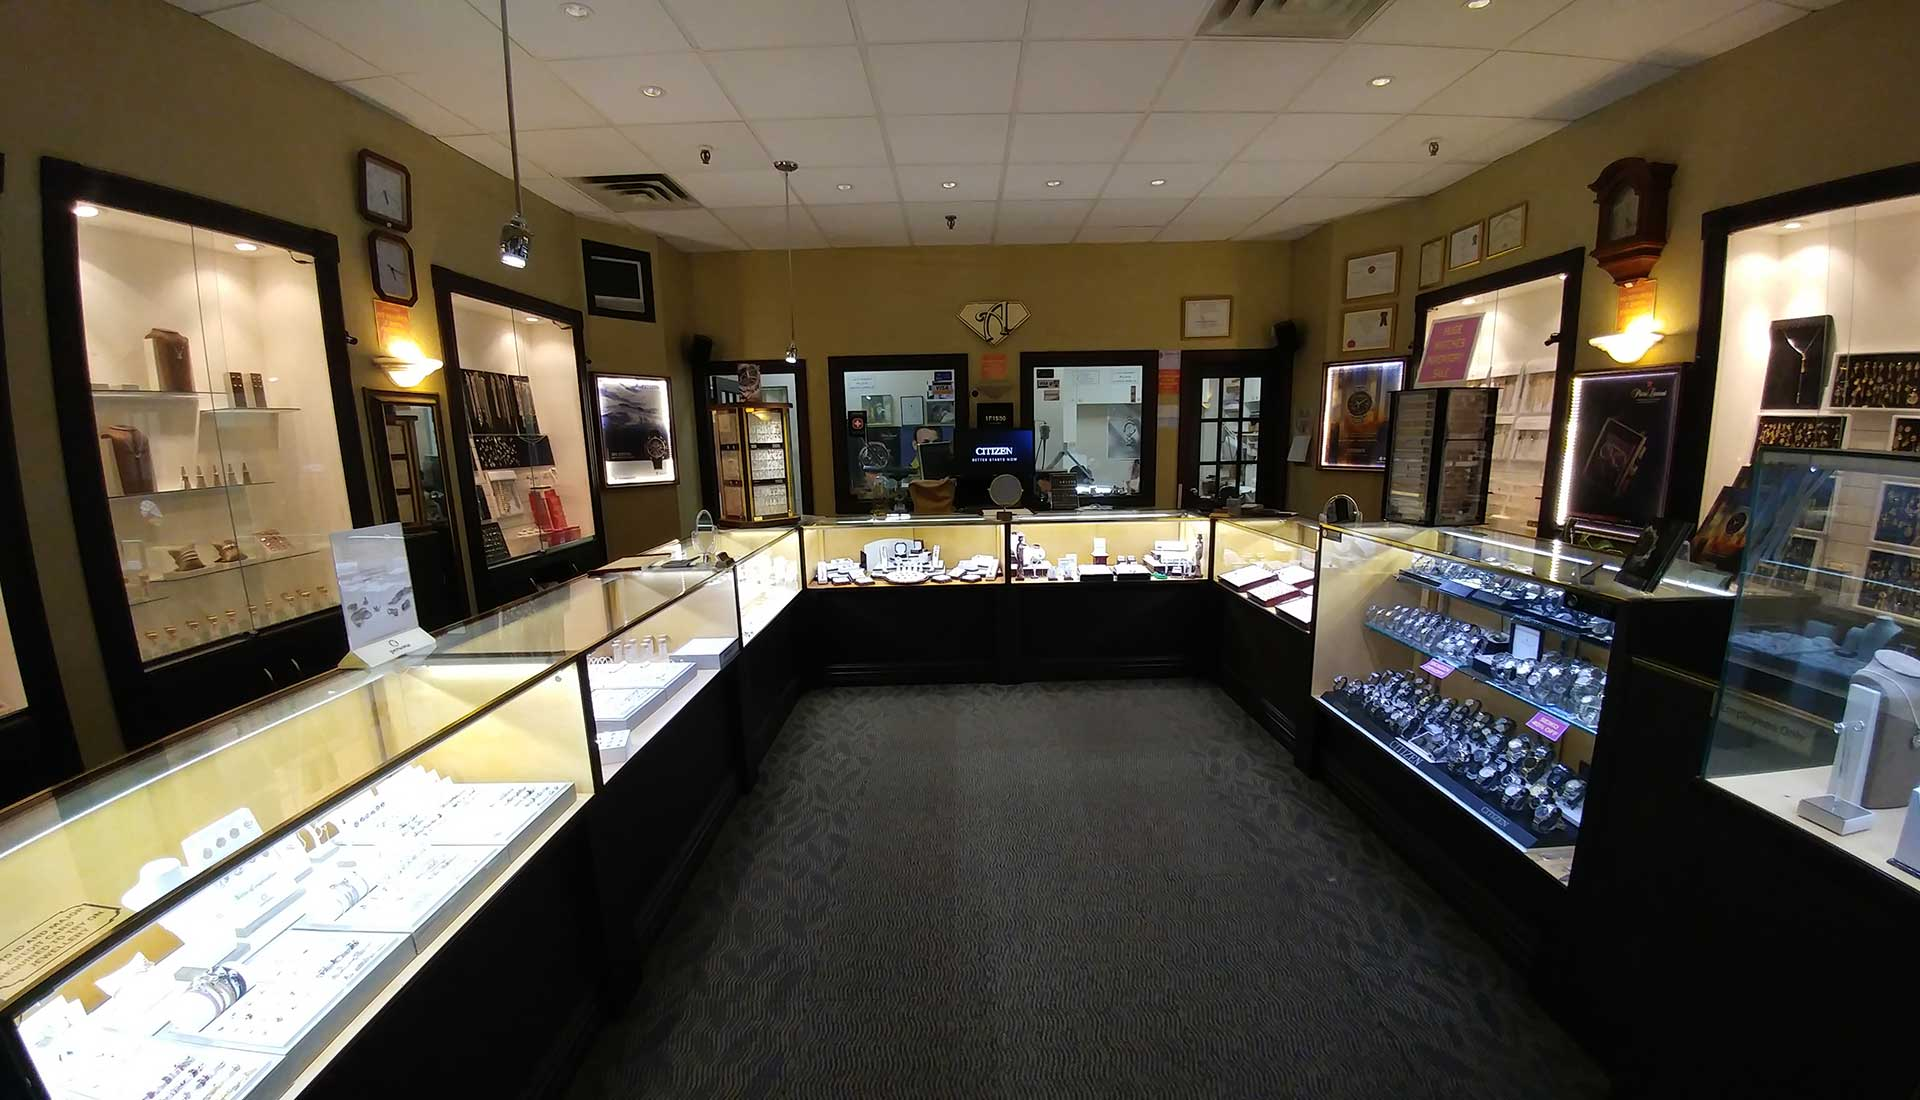 aria jewellers store, displaying jewellery